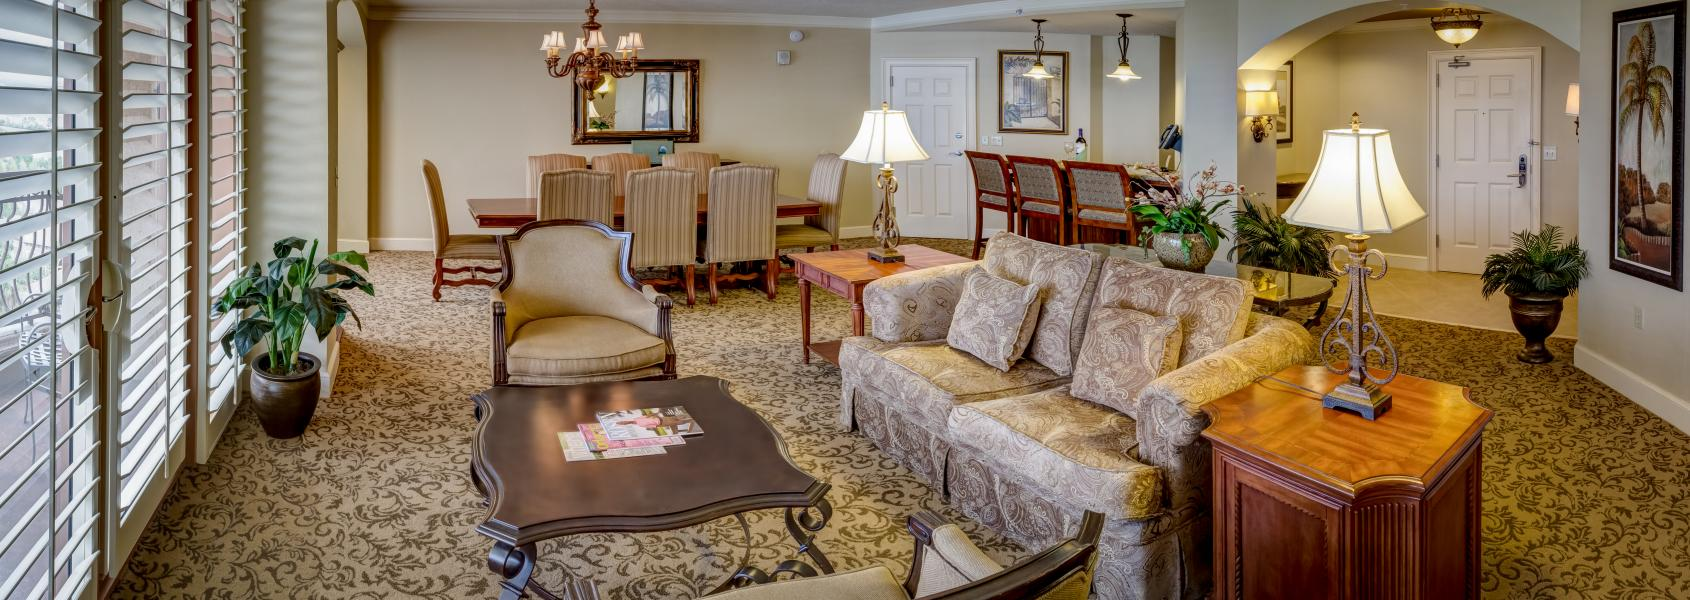 One of Rosen Shingle Creek's Grand Parlors featuring contemporary furnishings and scenic views.